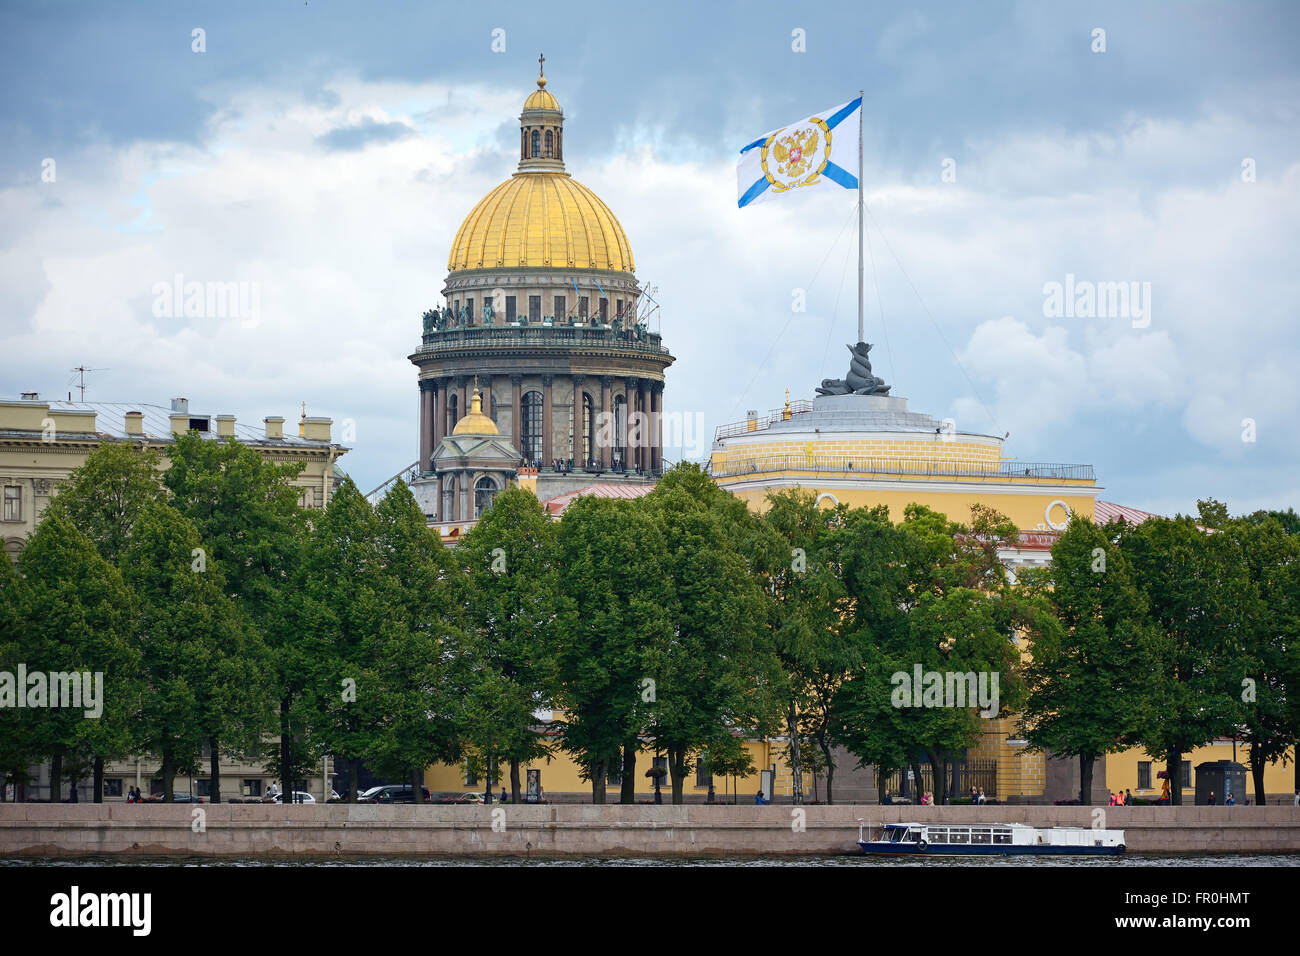 Saint-Petersburg, Admiralty embankment, the Admiralty building and St. Isaac's Cathedral dome. Stock Photo